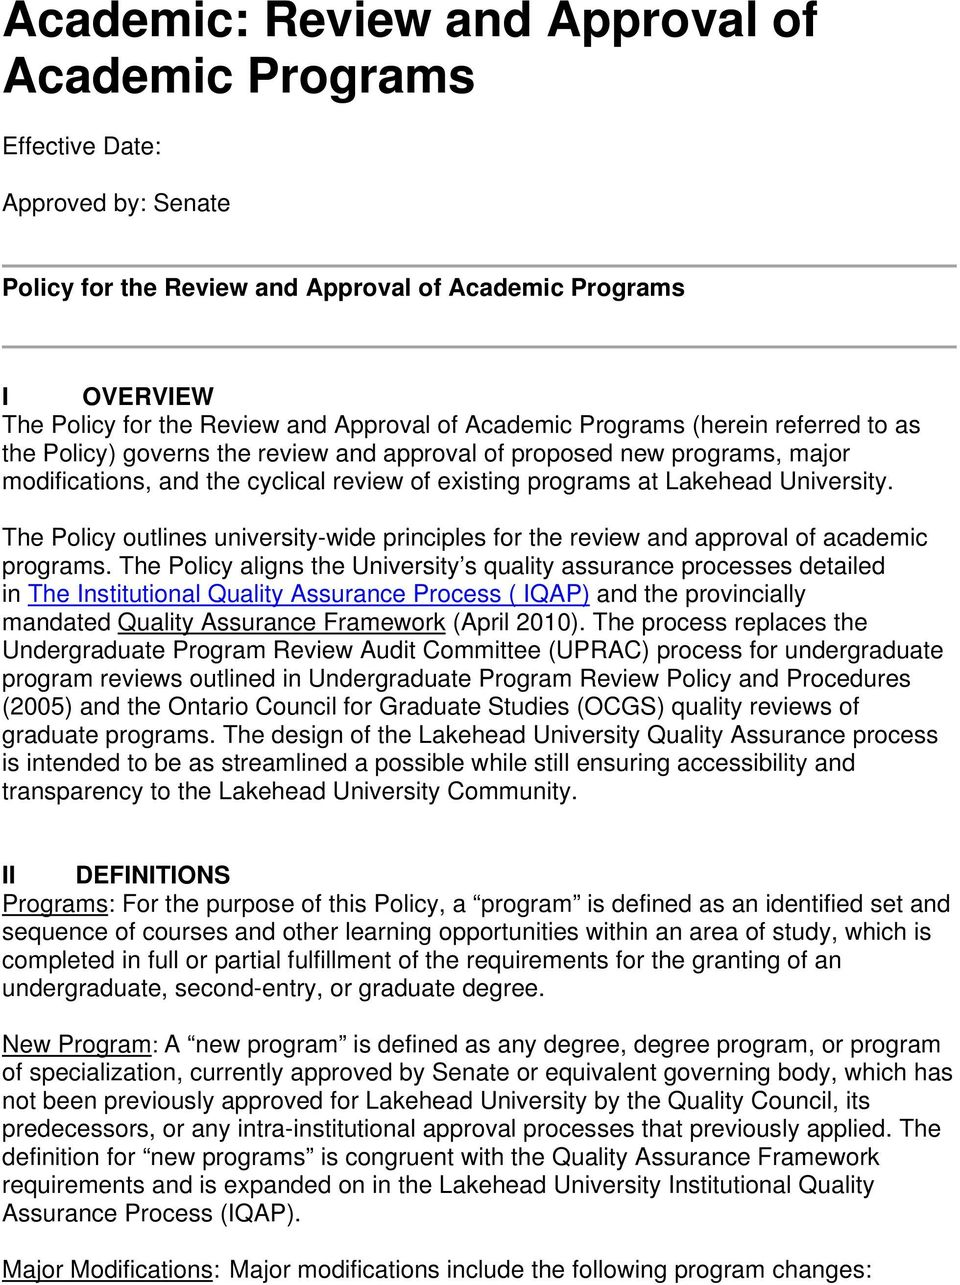 The Policy outlines university-wide principles for the review and approval of academic programs.